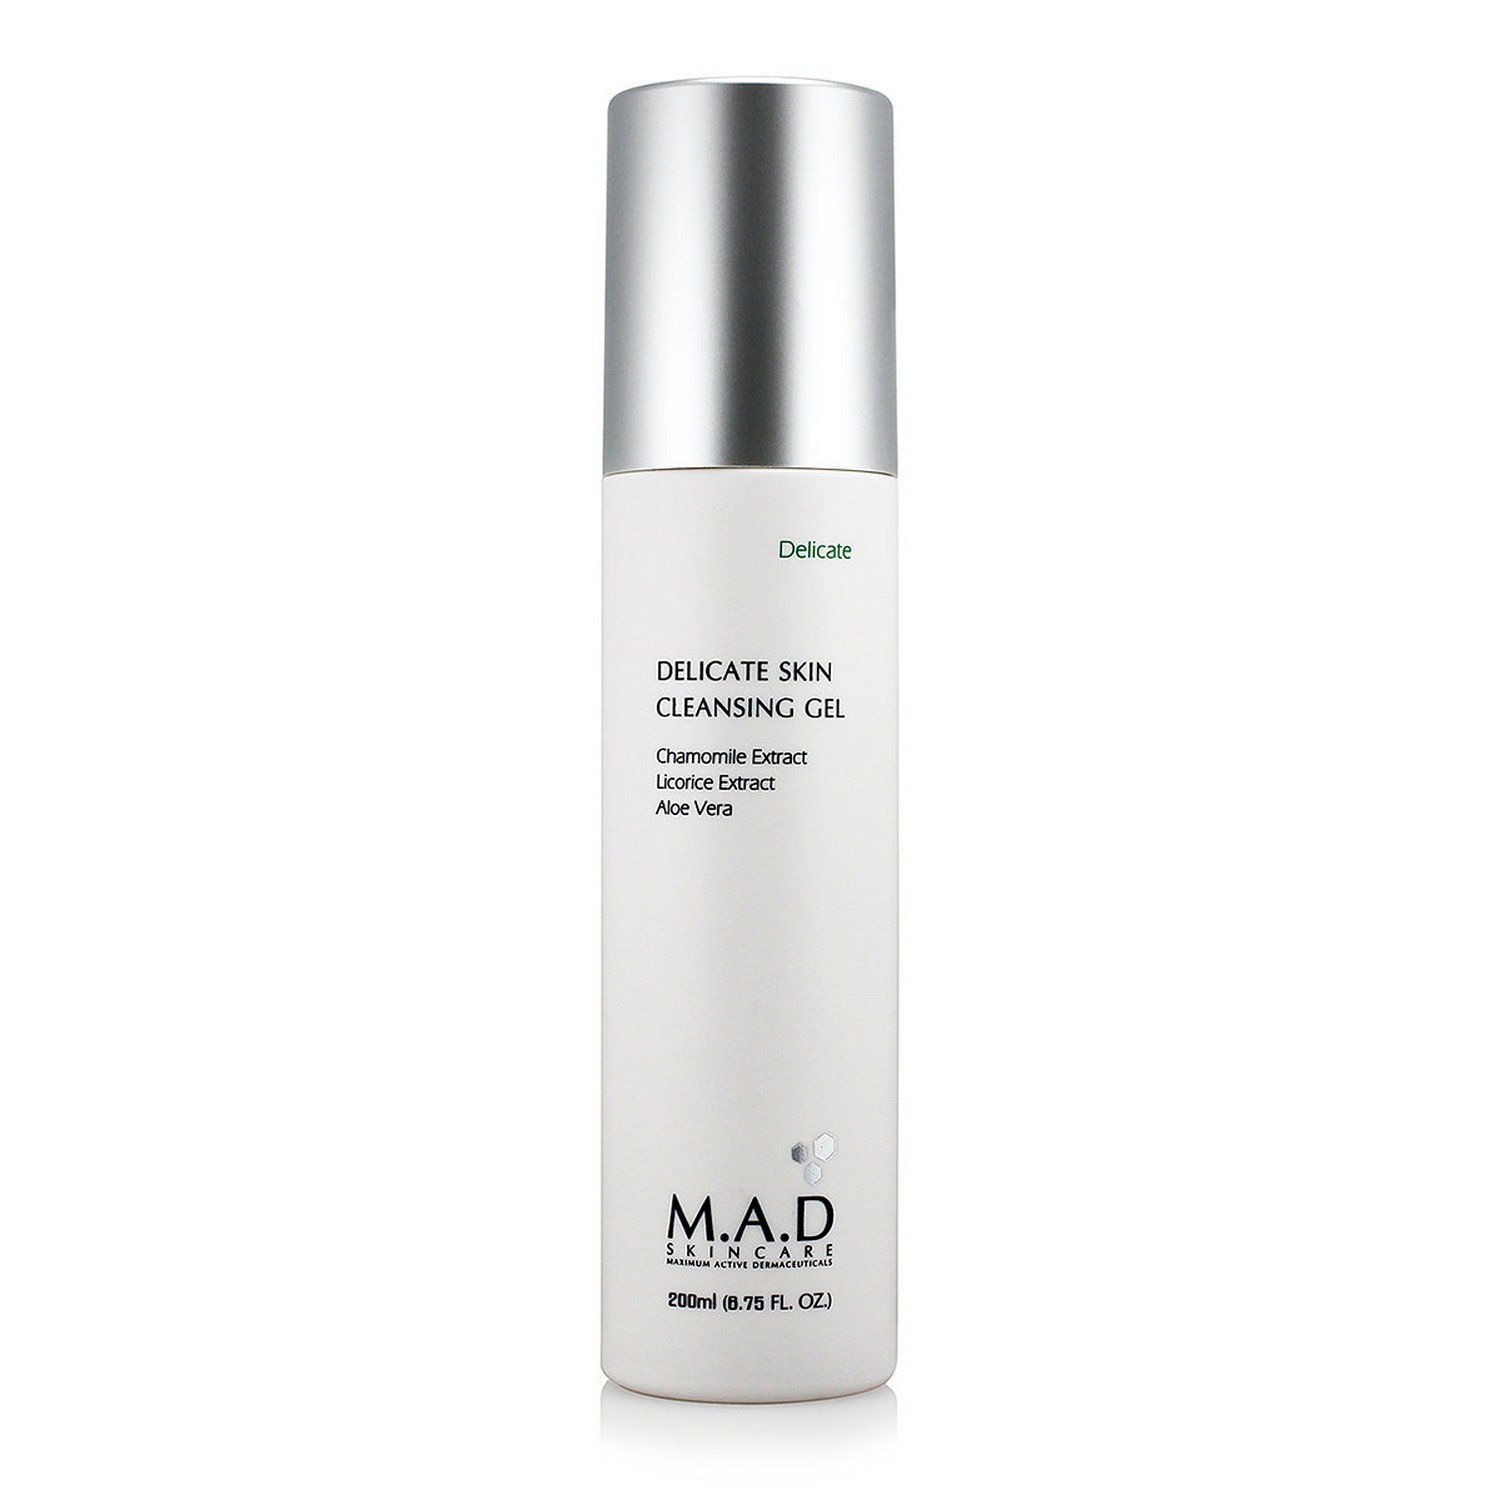 M.A.D SKINCARE DELICATE SKIN CLEANSING GEL (200 ml / 6.75 fl oz)